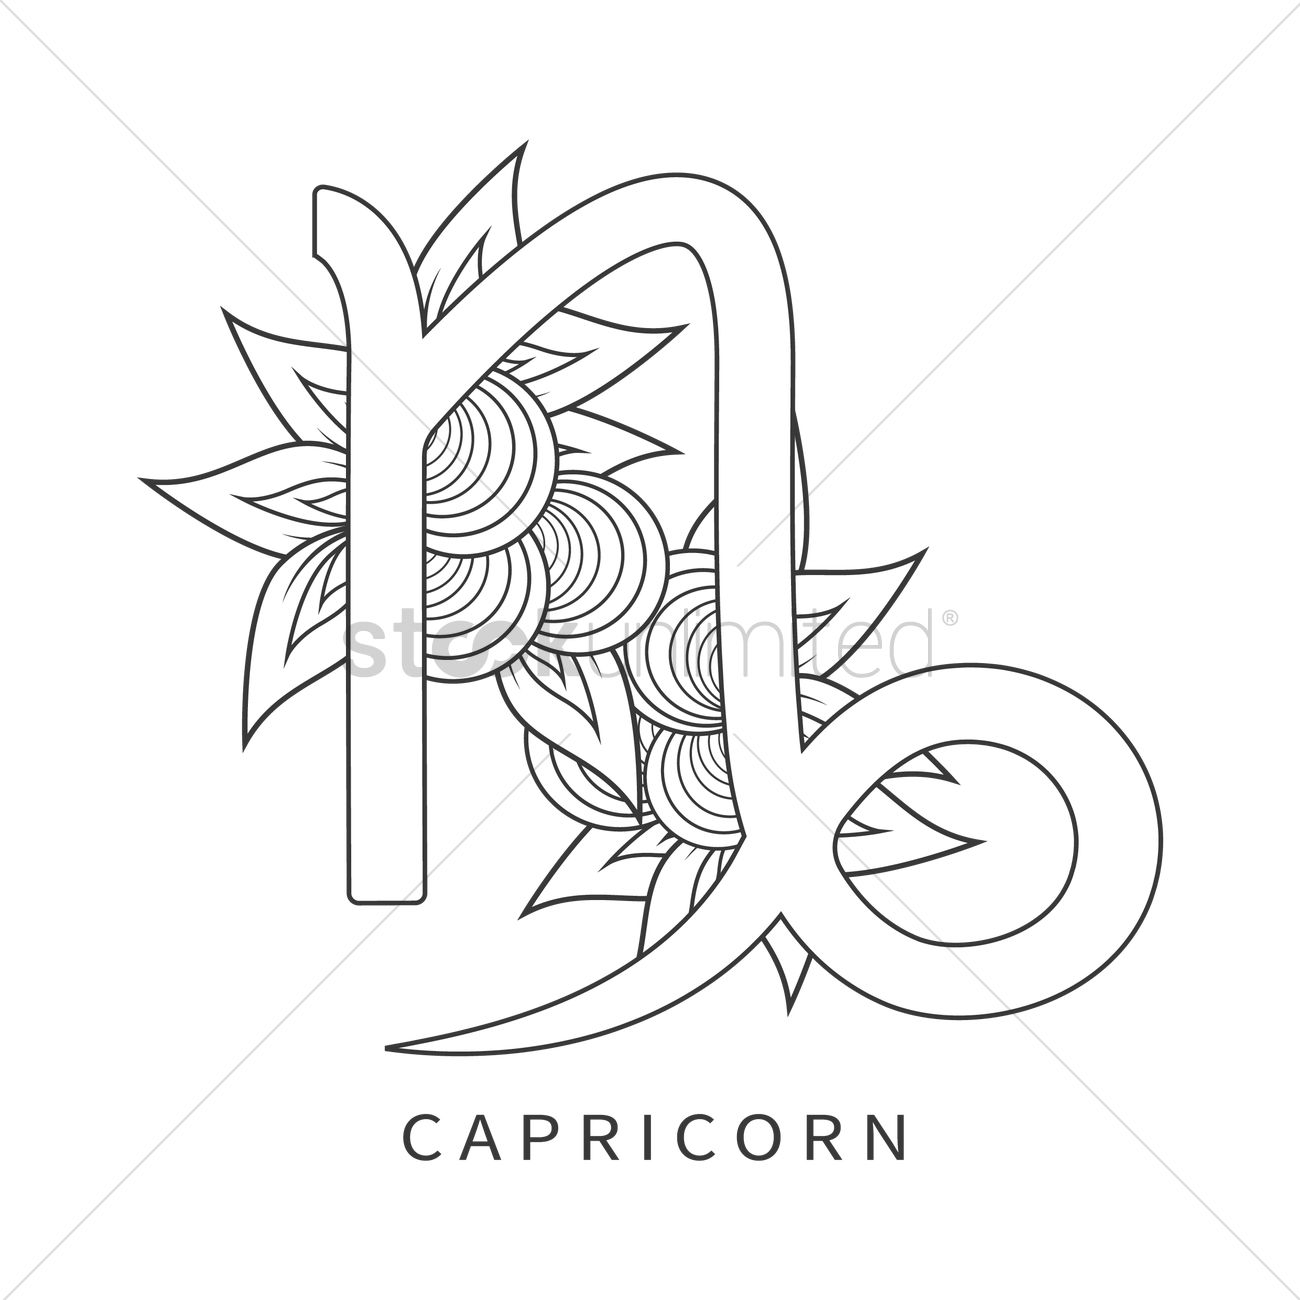 Capricorn Symbol Vector Image 1964284 Stockunlimited